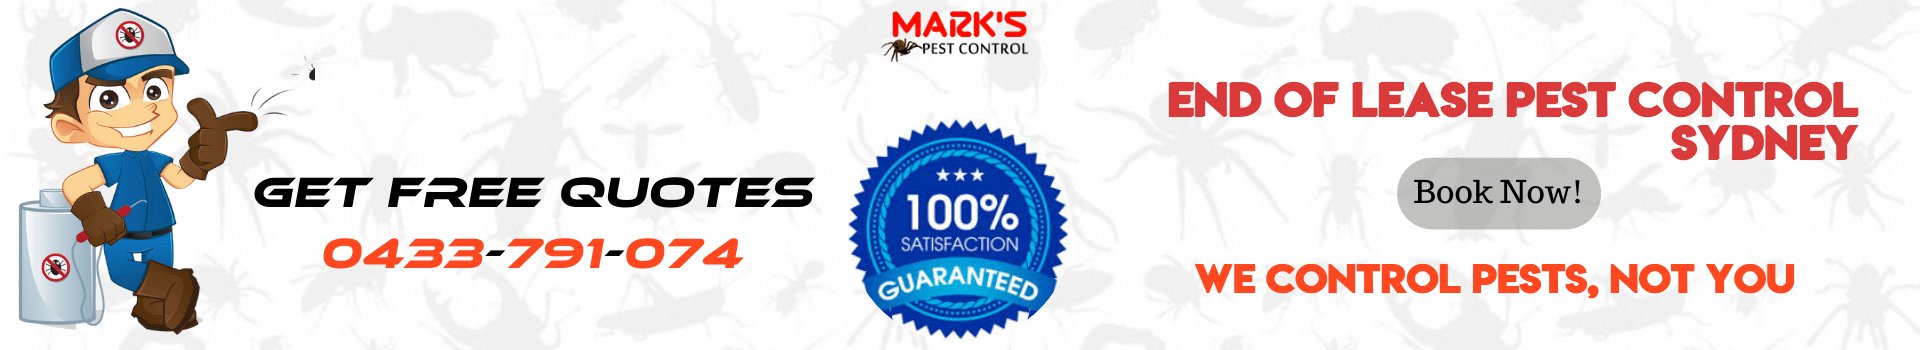 End Of Lease Pest Control Sydney